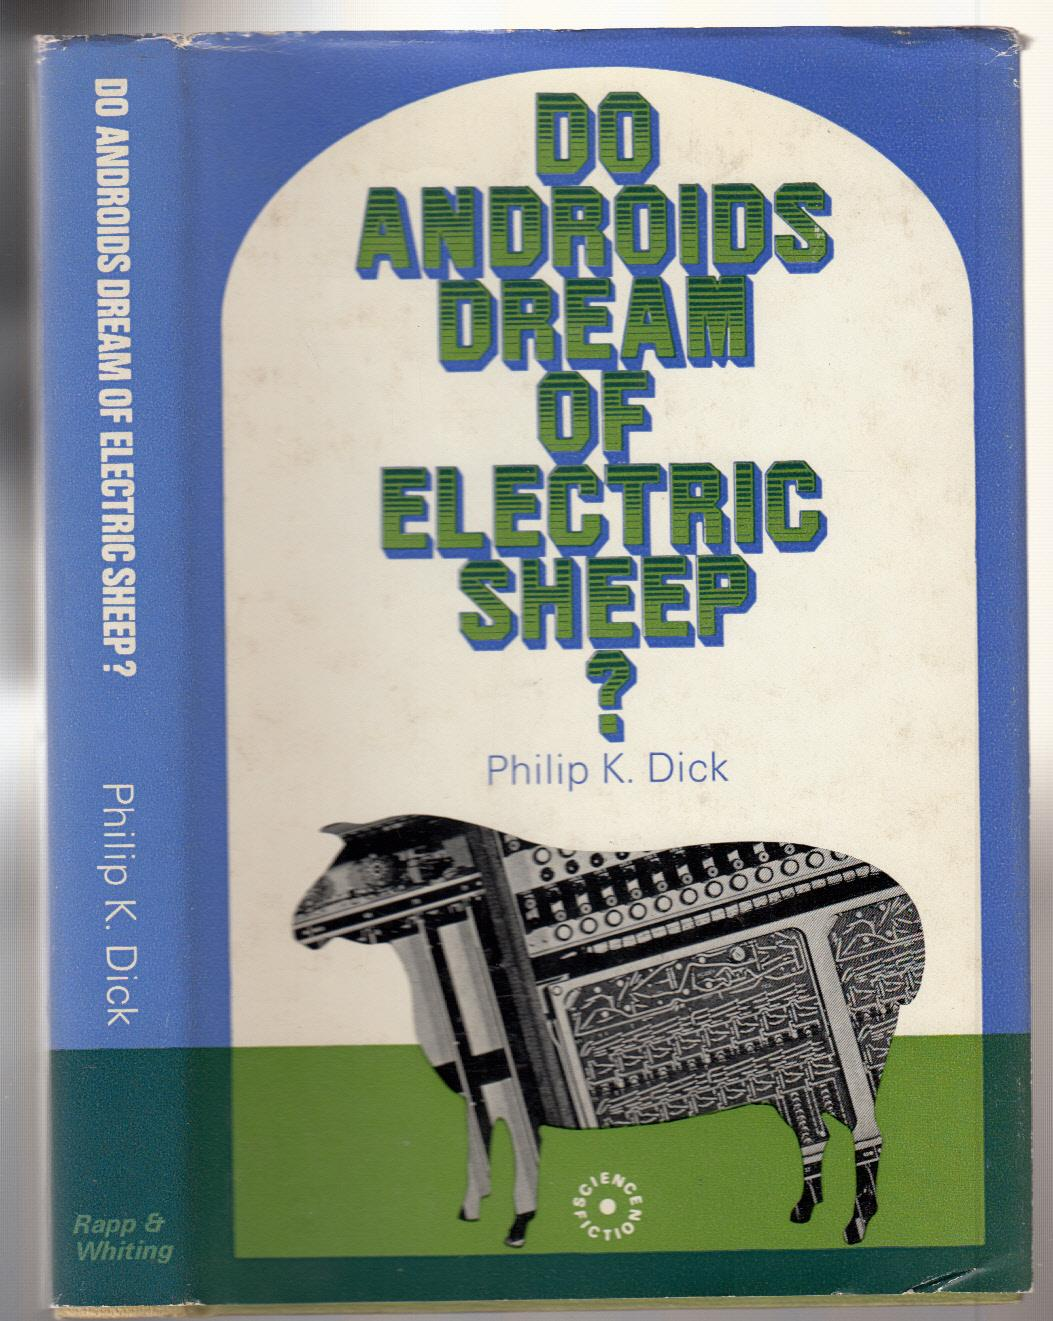 an analysis of dicks story in do androids dream of electric sheep by philip k dick The first of dick's novels to be made into a film was do androids dream of electric sheep the movie was released in 1982 as blade runner, starring harrison ford as the noir detective rick deckard the film was directed by ridley scott who most famously directed the science fiction hit alien.